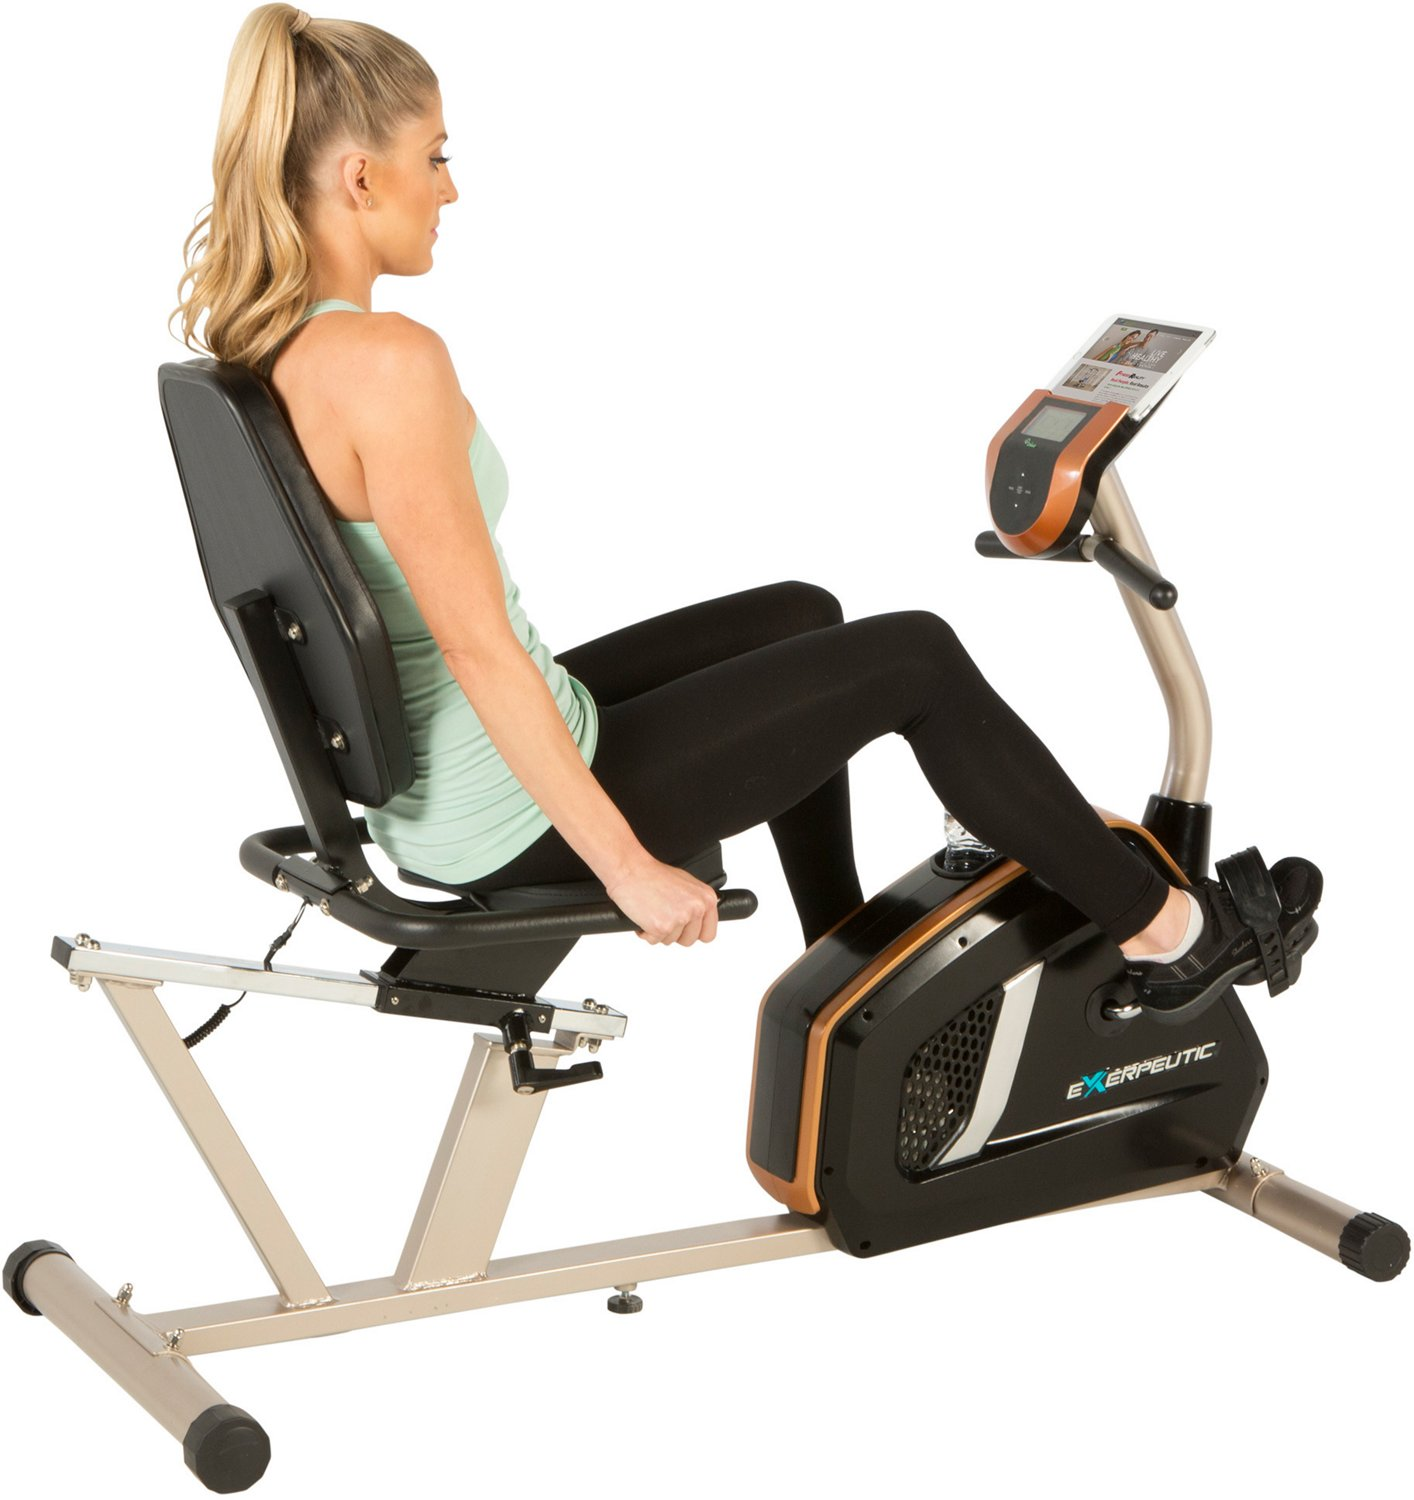 Exerpeutic 975XBT Bluetooth Smart Technology Recumbent Exercise Bike - view number 2